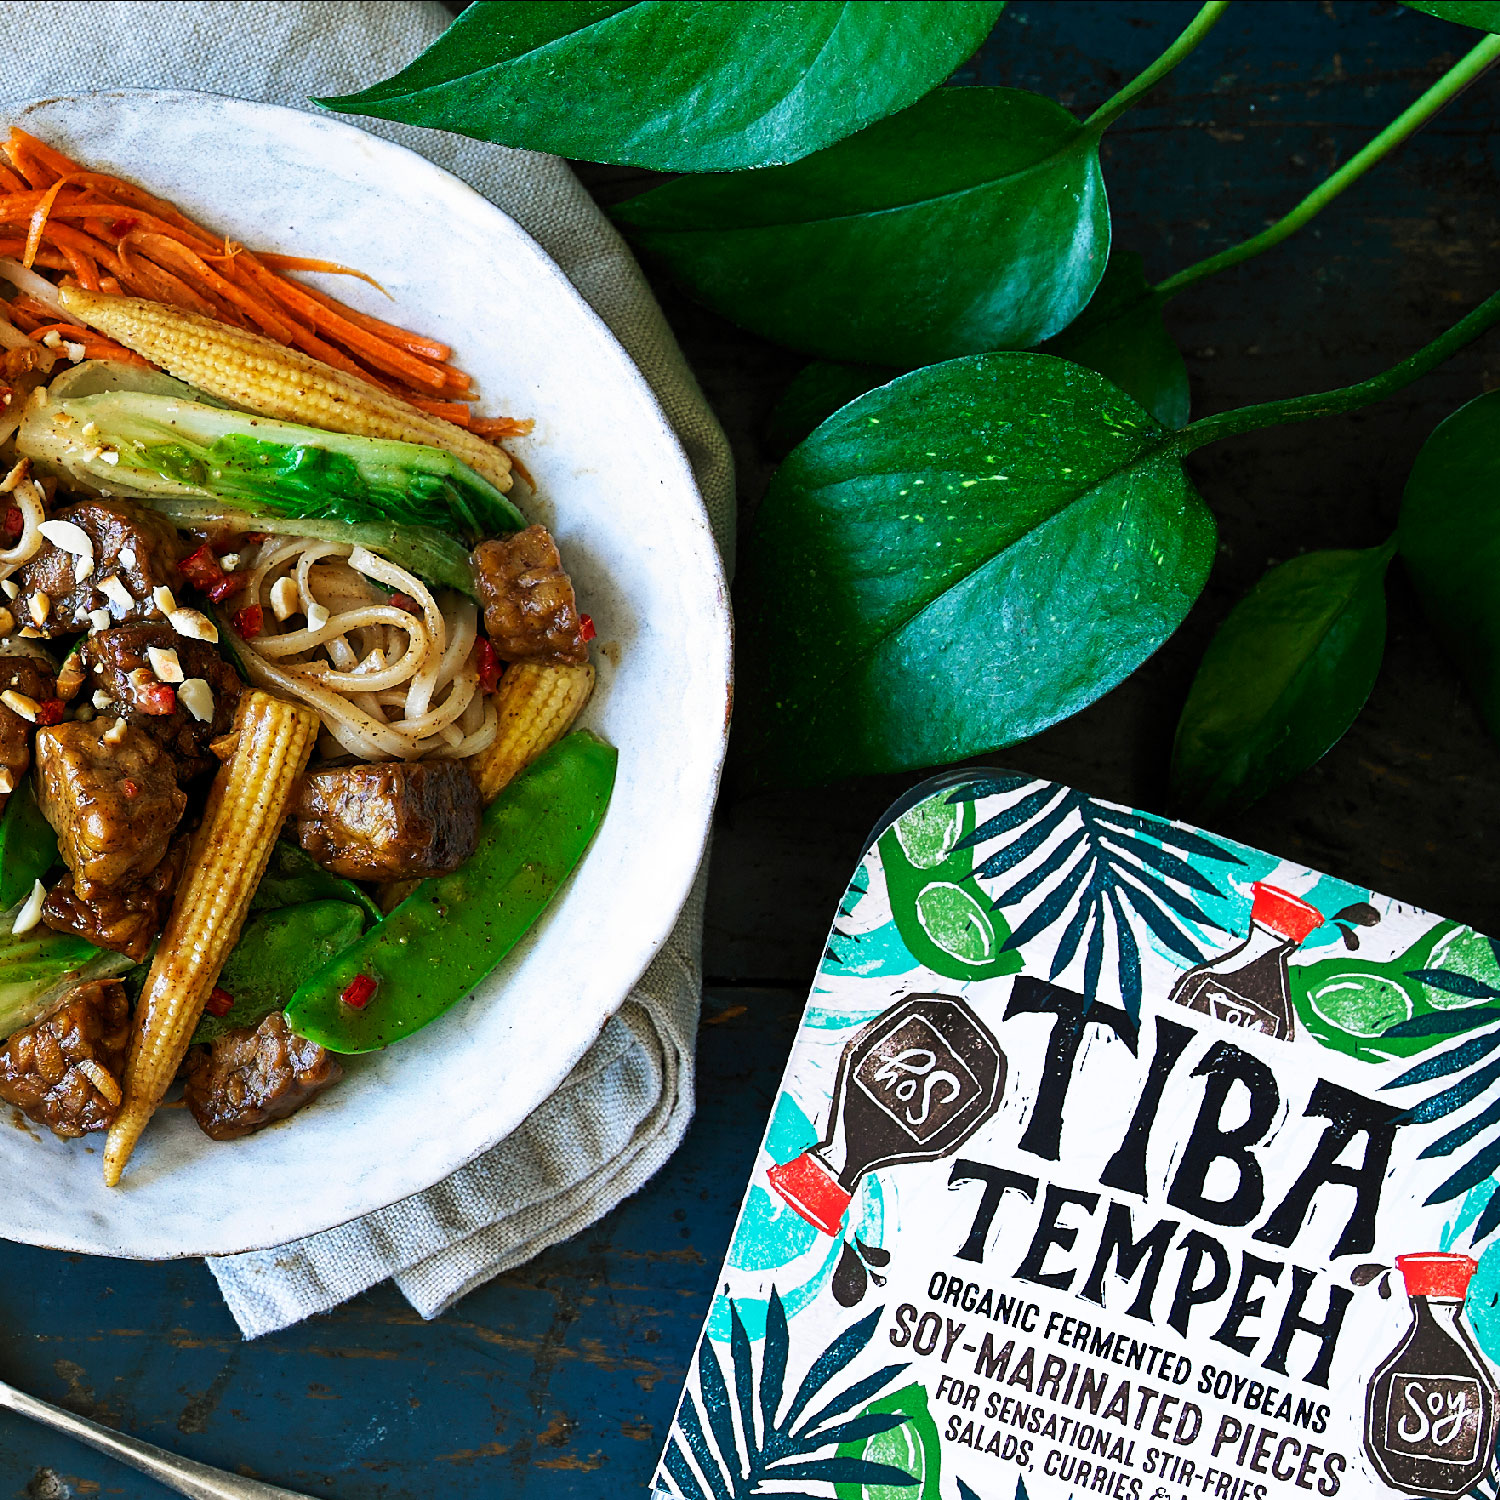 Tiba Tempeh x 10 + Tote Bag + Free delivery